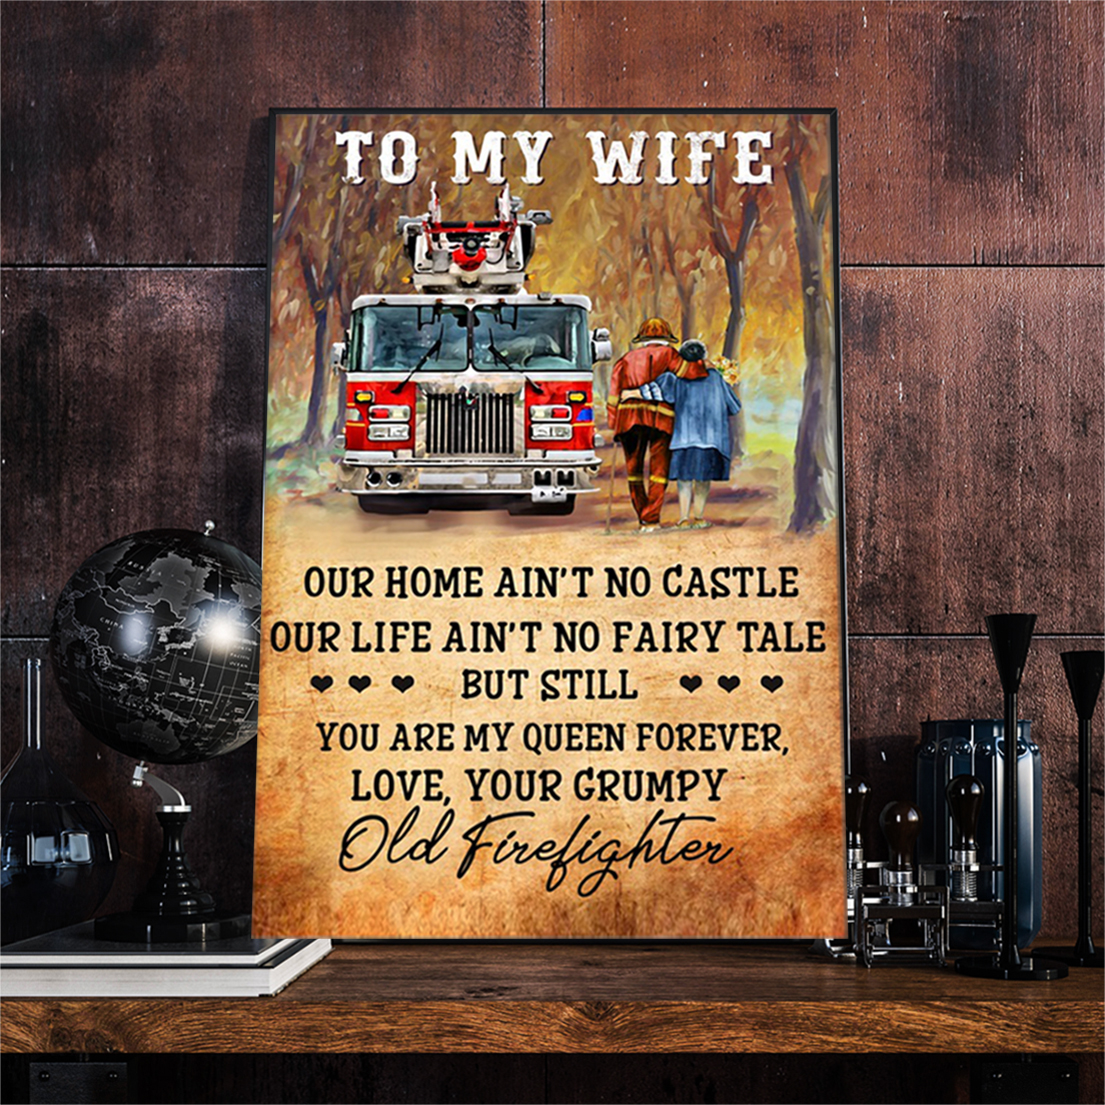 Firefighter couple to my wife poster A2